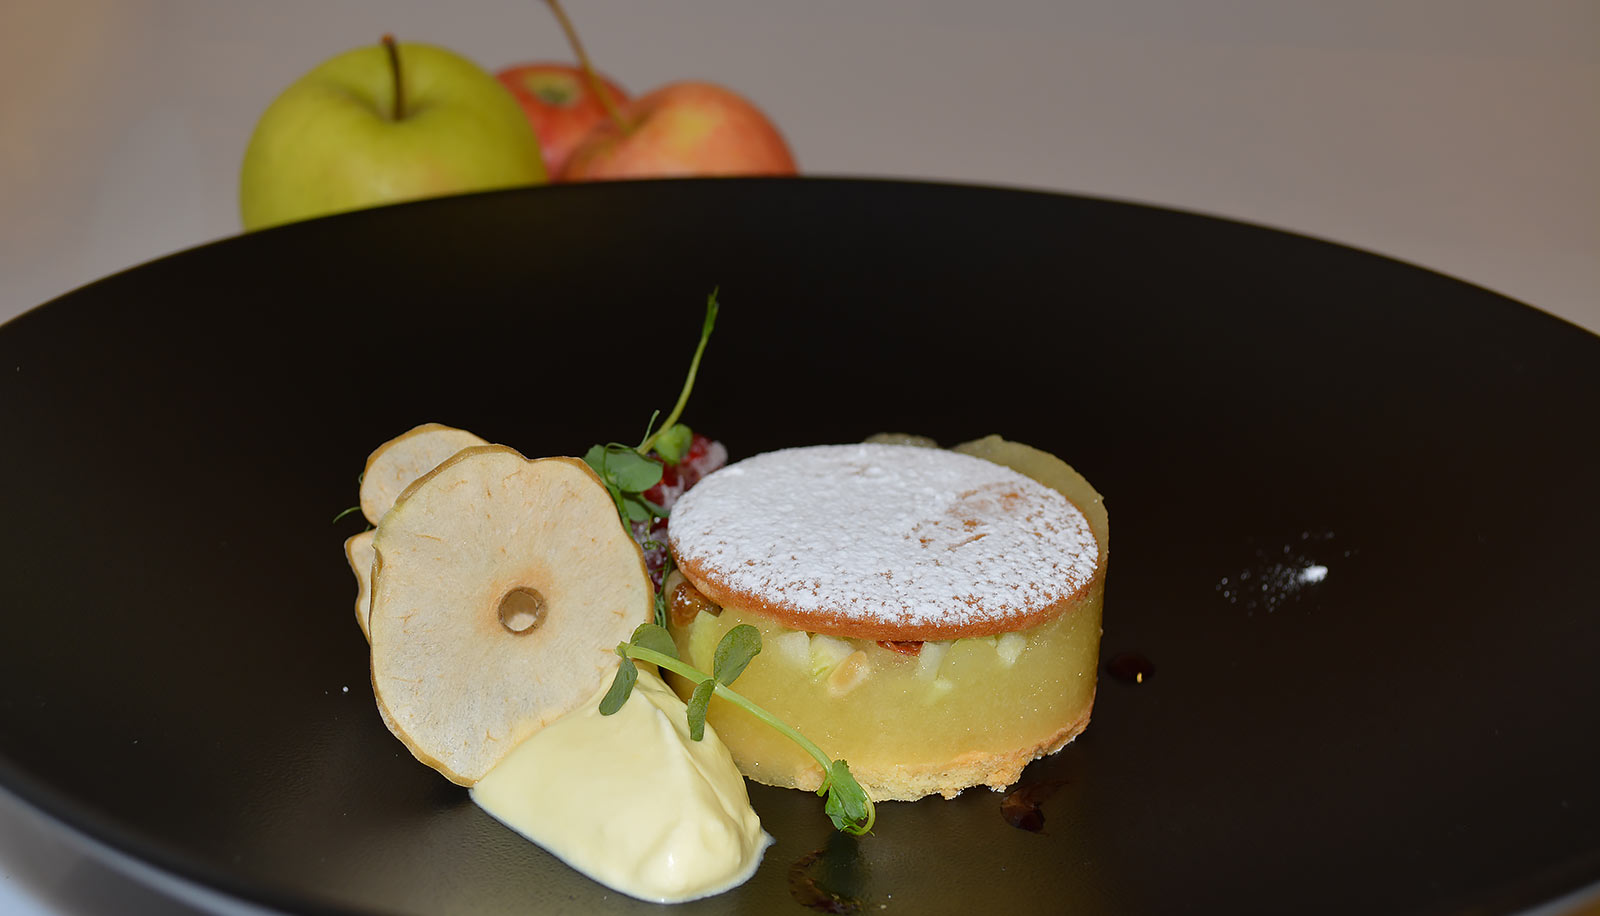 Dessert with apples and ice-cream